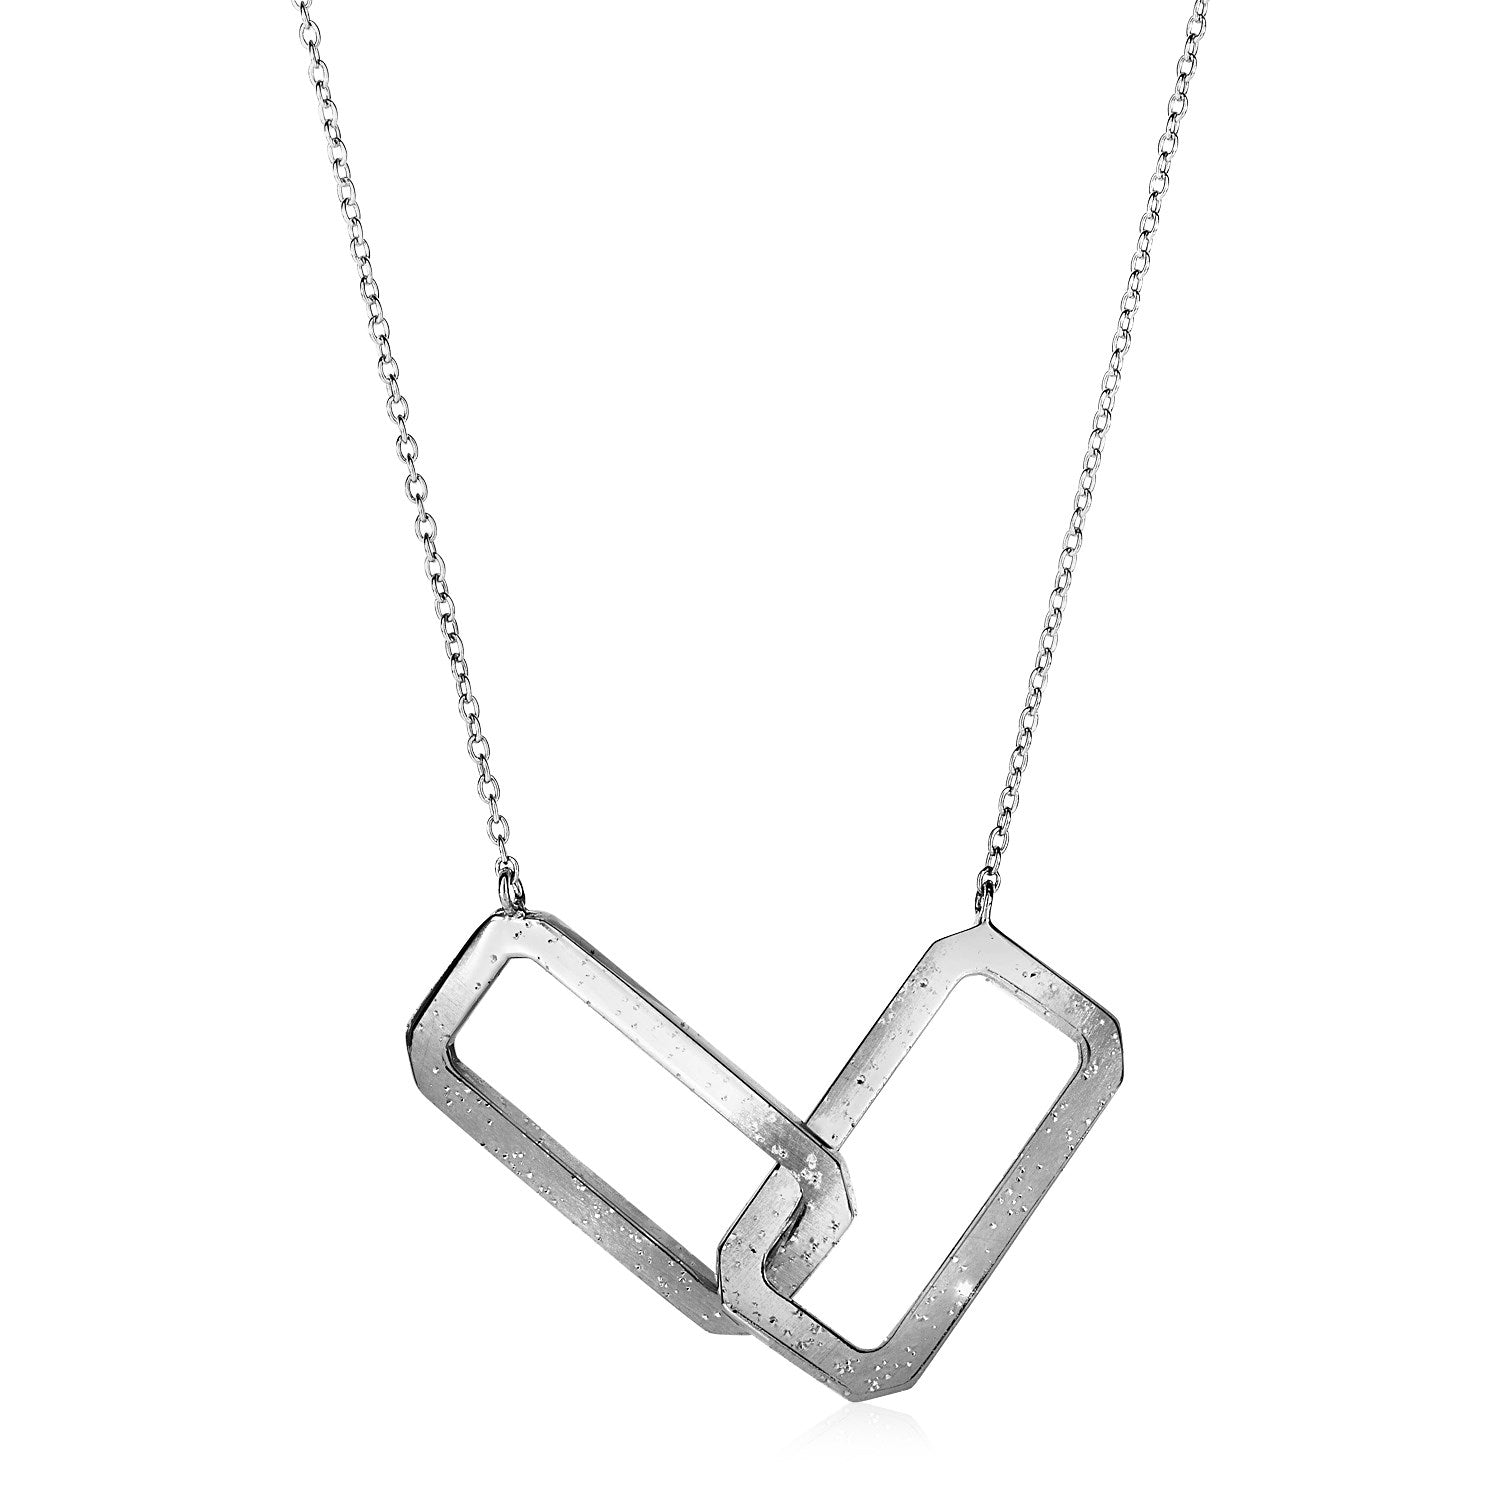 Necklace with Interlocking Open Rectangles in Sterling Silver